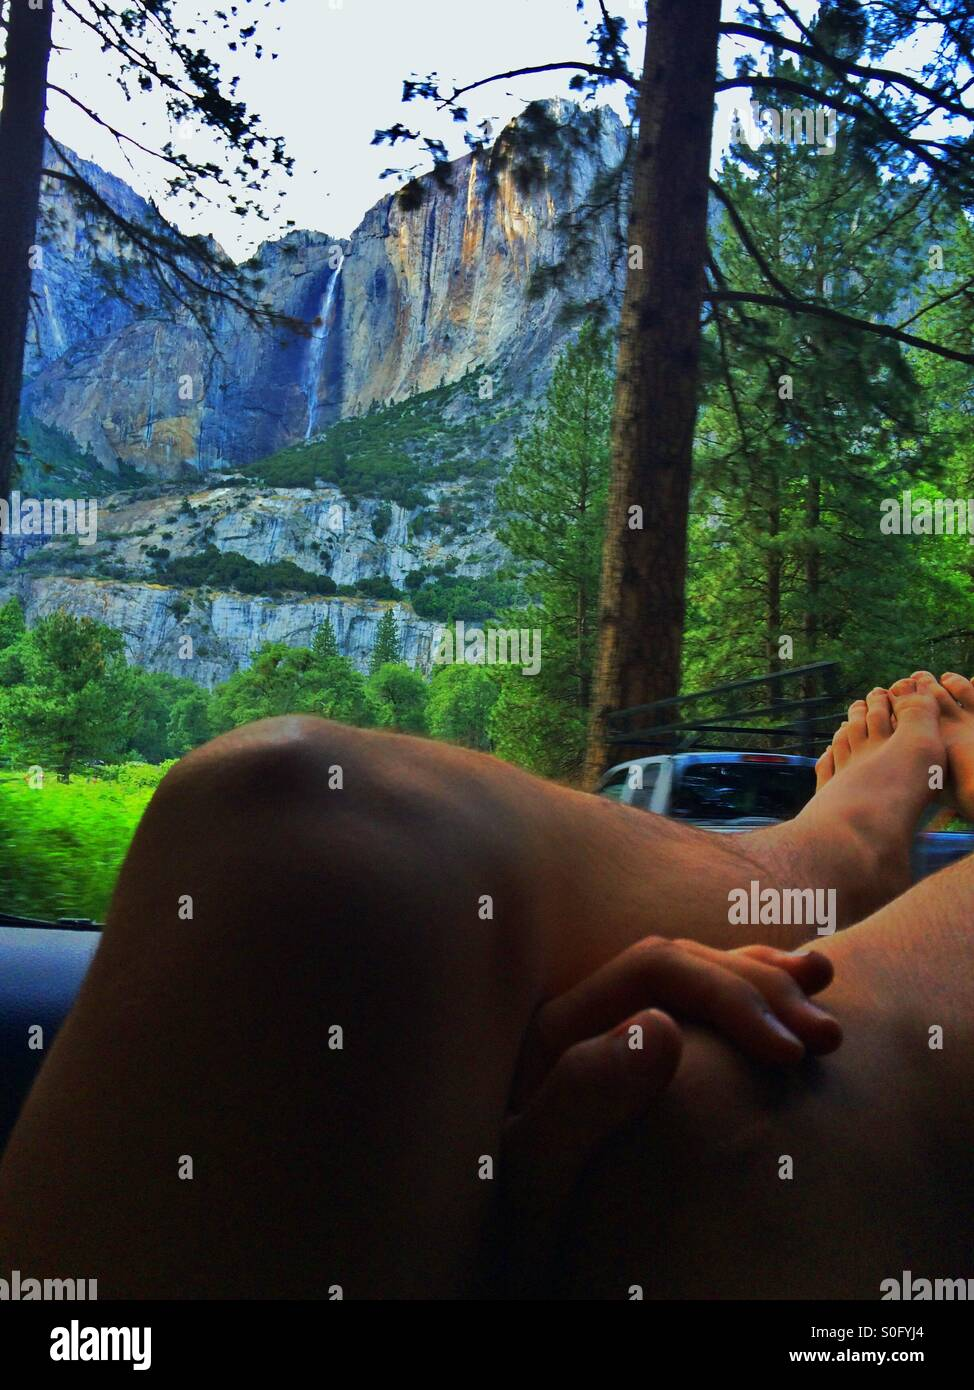 A young adult relaxes with his feet out the car window while gazing up at Yosemite Falls - Stock Image